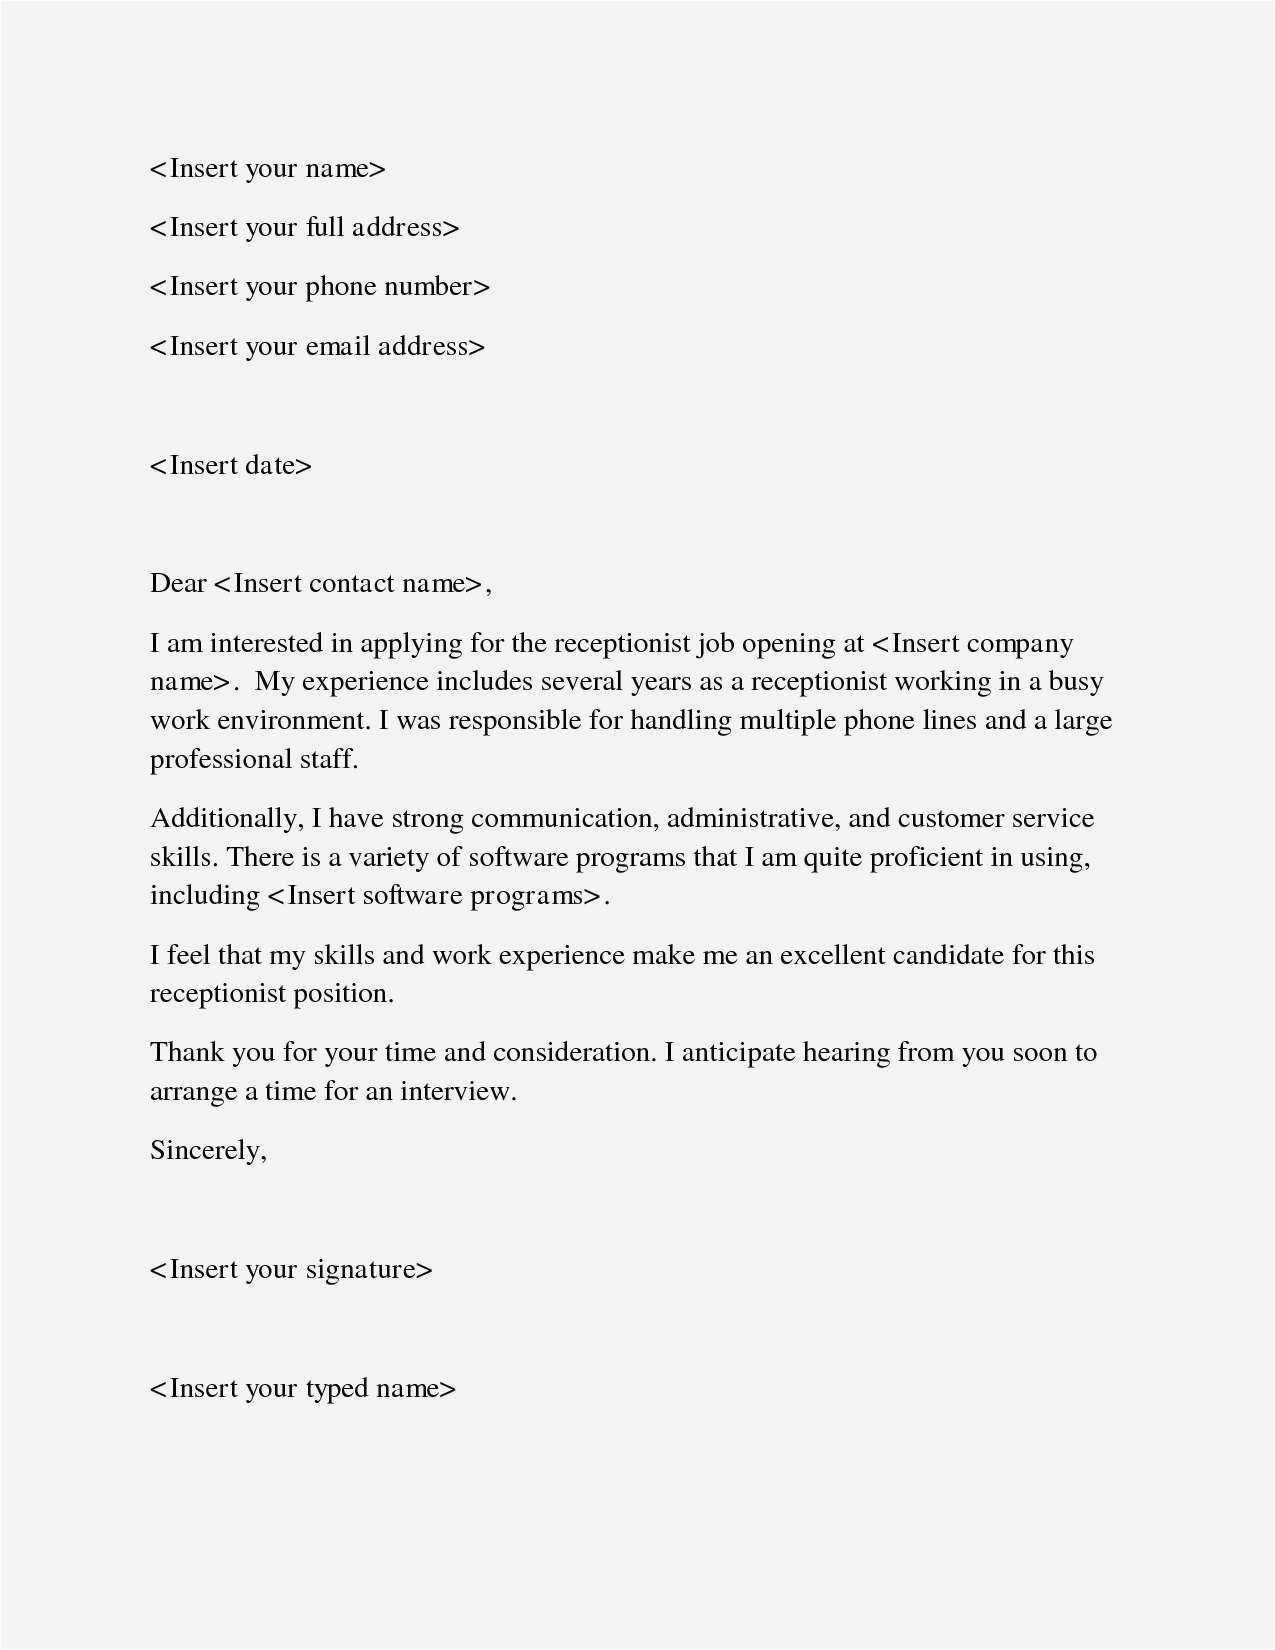 receptionist resume template free Collection-Simple Resume Cover Lette Best Sample Email Cover Letter Sample Job Fer Letter Template Us Copy 20-h